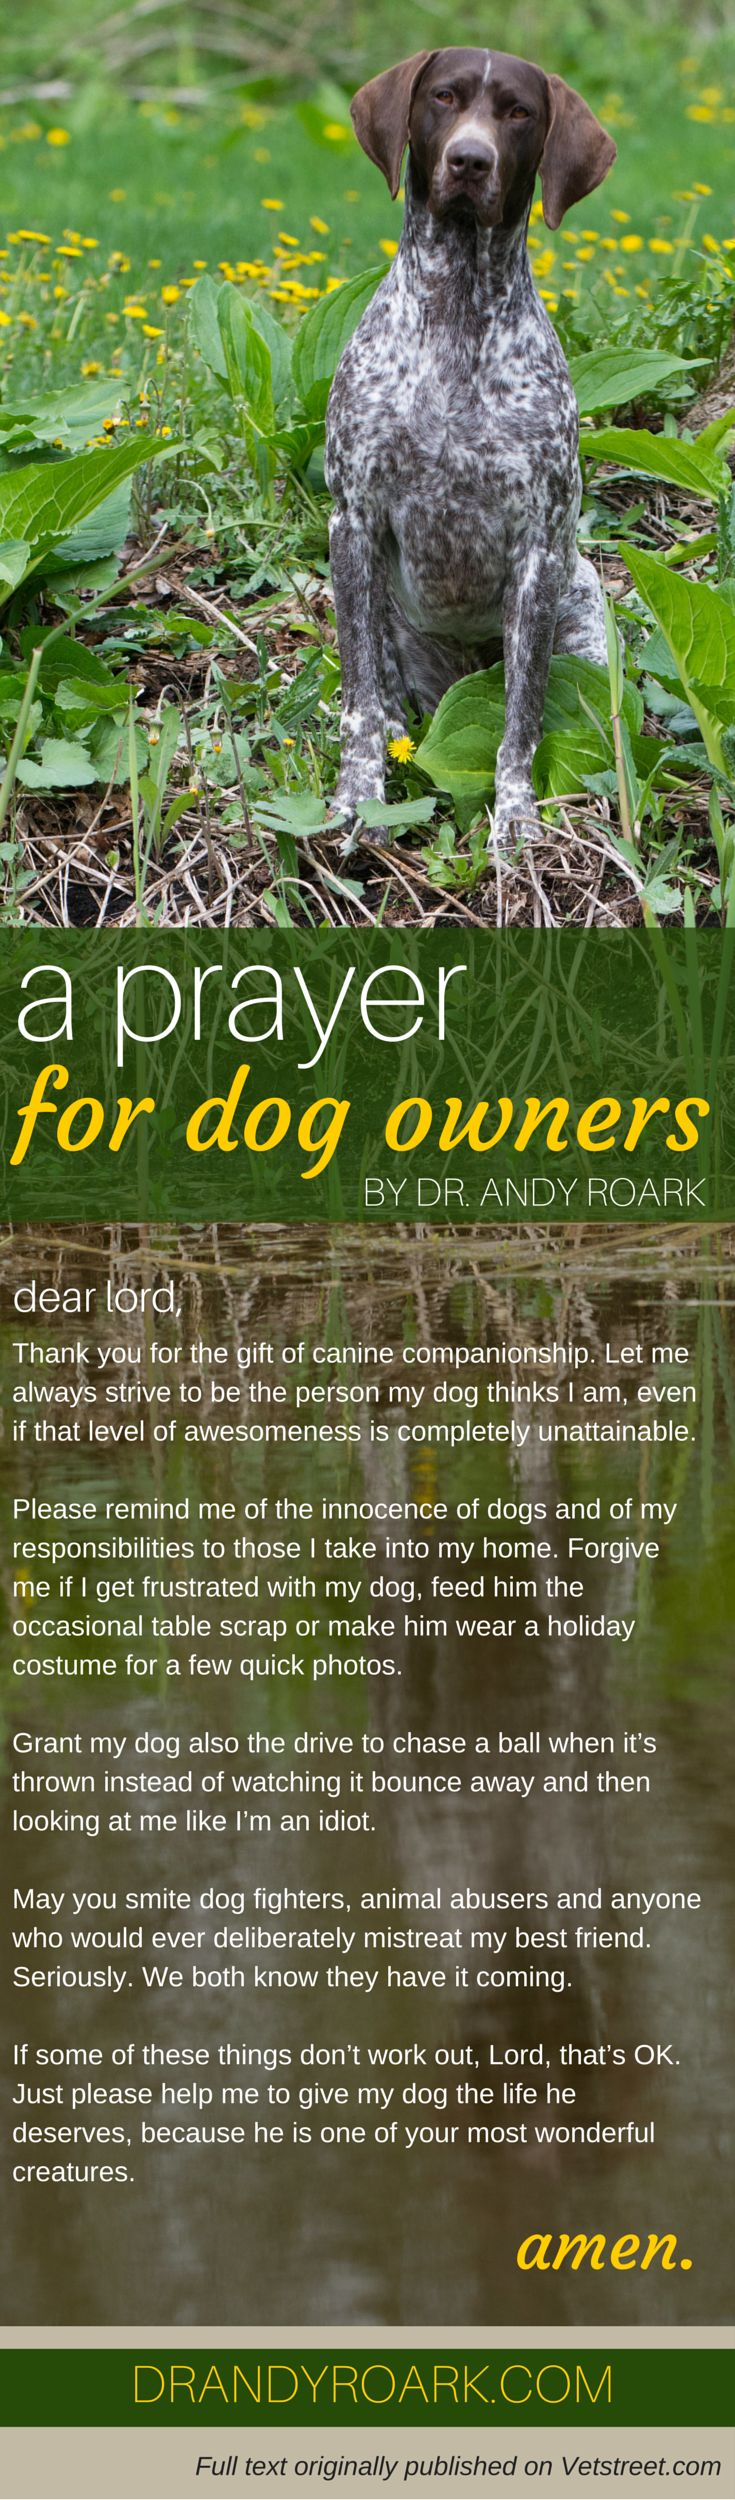 Dr. Andy Roark's prayer for dog owners. Share with any veterinarian, vet tech or pet lover. <3